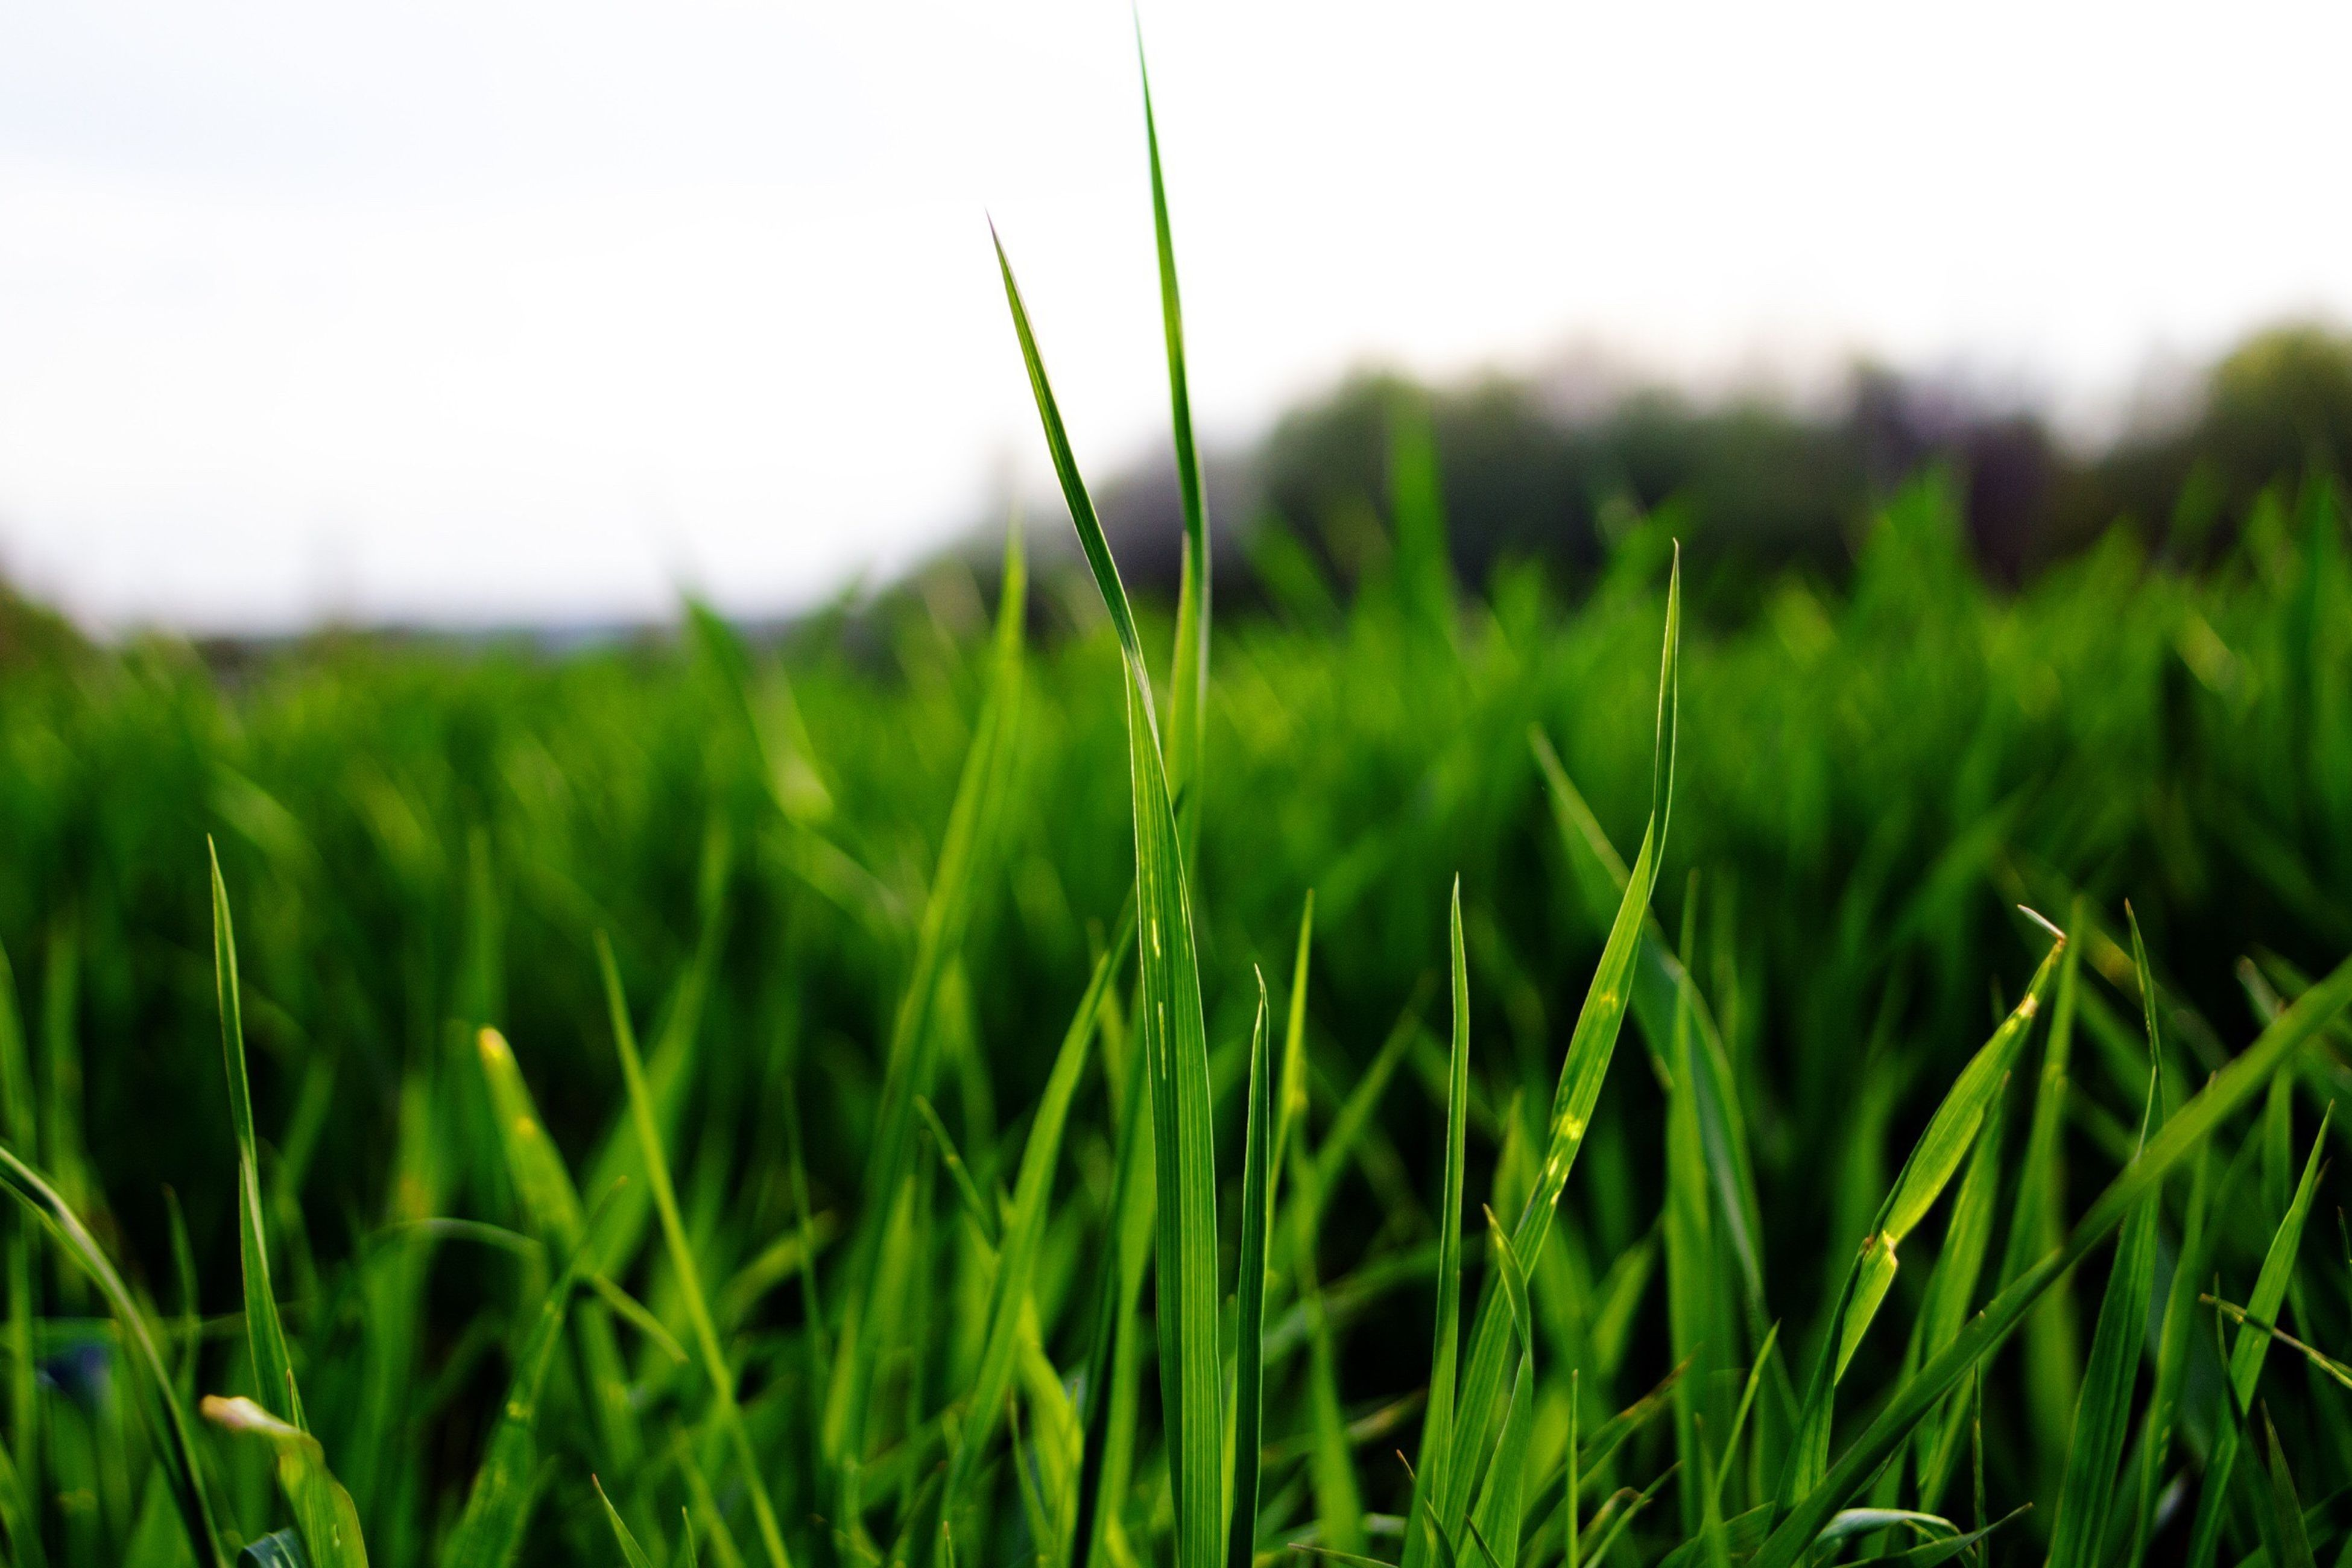 grass, field, growth, green color, blade of grass, nature, beauty in nature, tranquility, focus on foreground, plant, selective focus, rural scene, landscape, clear sky, agriculture, tranquil scene, farm, grassy, close-up, crop